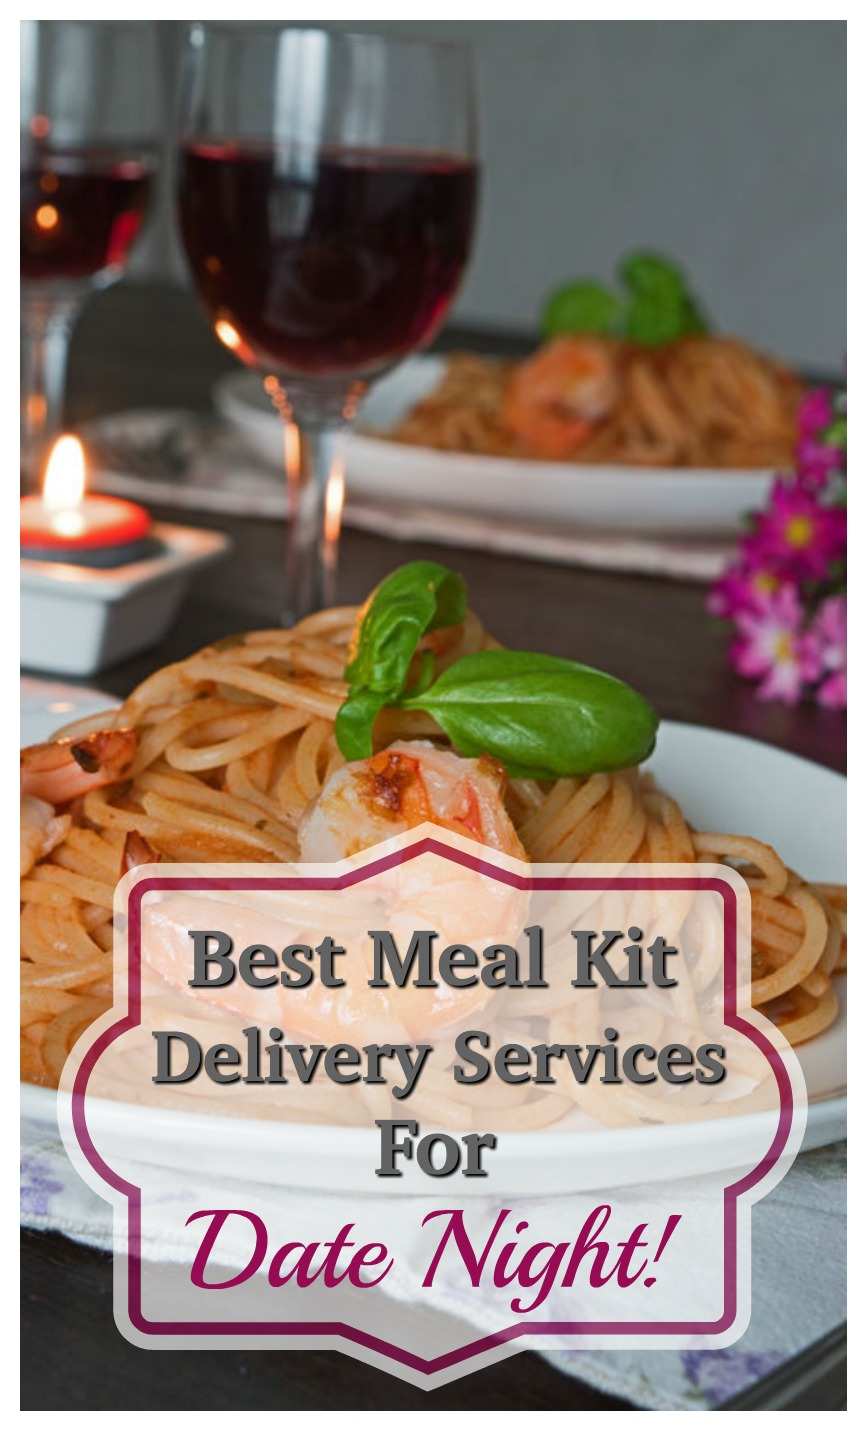 Whether it's an at-home date with your spouse or a meal to impress someone special, these Best Meal Kits for Date Nights are sure to be a hit!